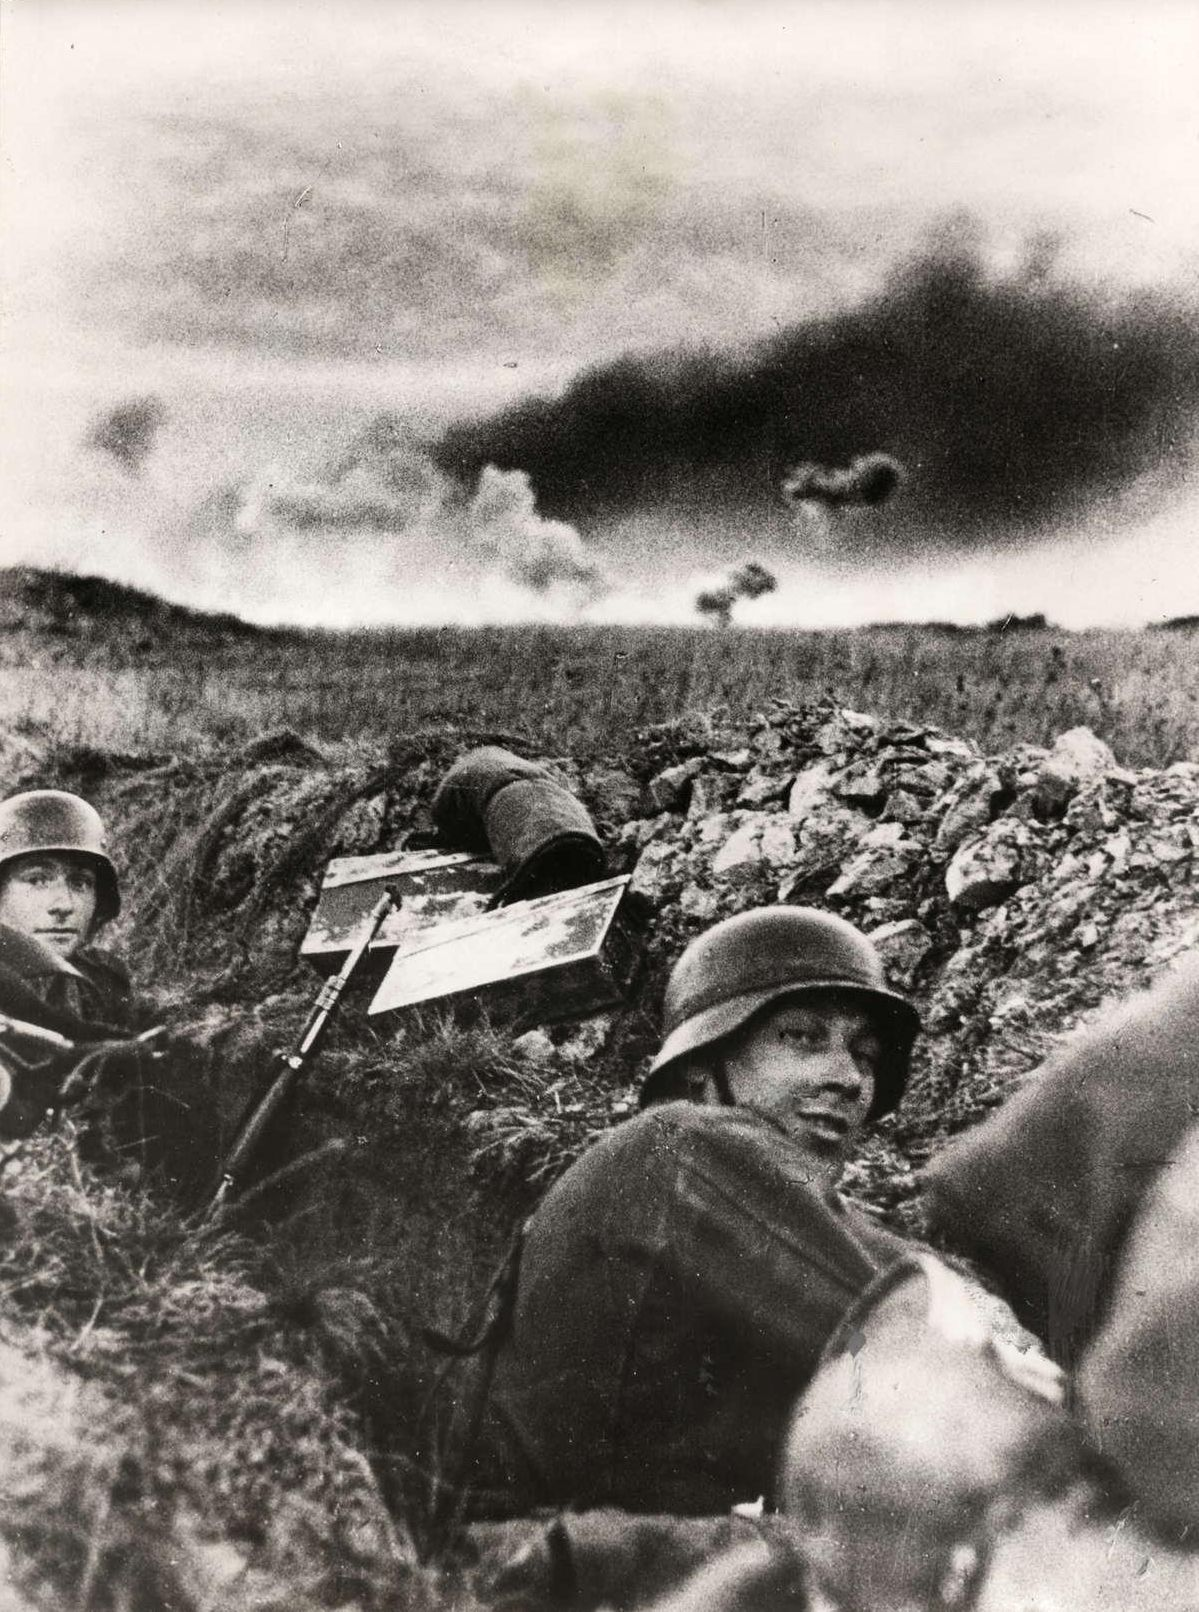 German Soldiers Taking Cover In A Ditch While Artillery Explodes On The Horizon Eastern Front 1941